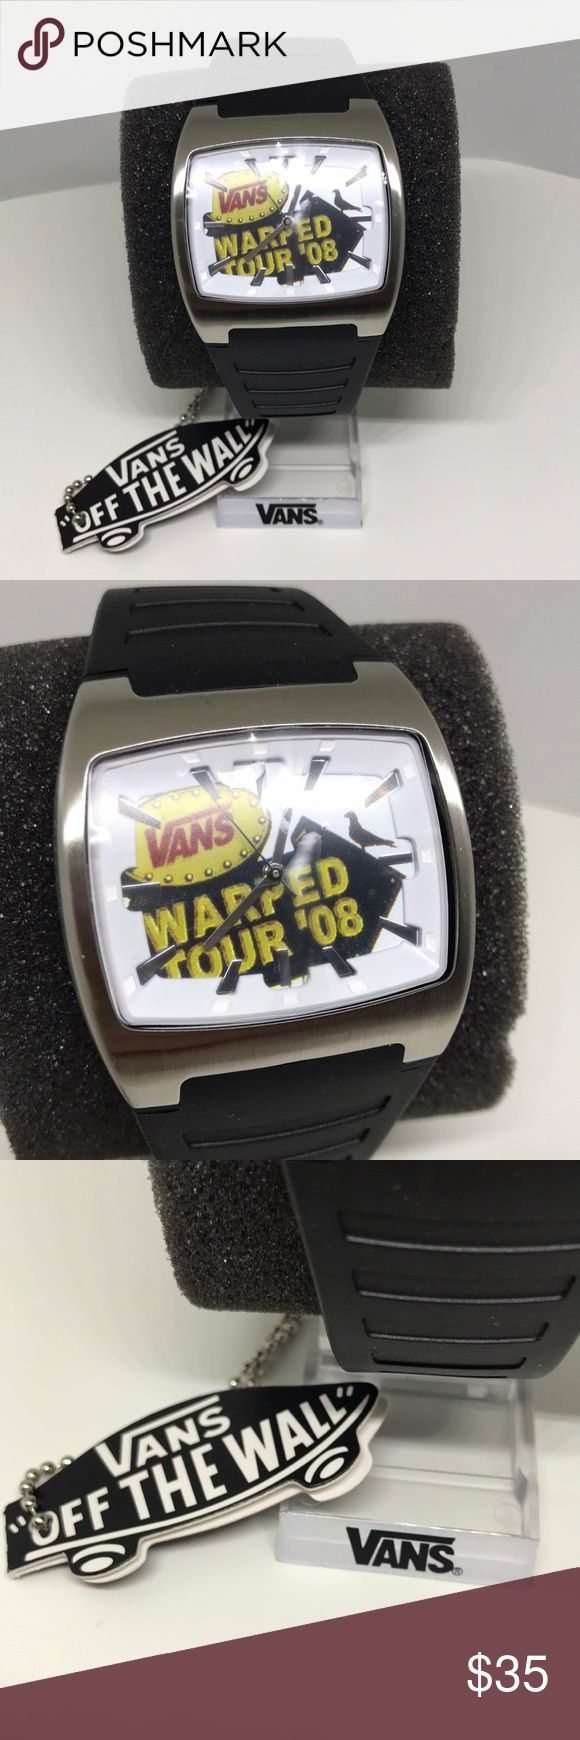 Vintage Vans Warped Tour '08 Watch Vintage Vans Warped Tour '08 Watch, With protective Sleeve still over the top and bottom of Watch, Battery is not working, Brand New, Never Worn or Used, WILL SHIP IN ONE DAYAll bundles of 2 or more receive 20% off. Closet full of new, used and vintage Vans, Skate and surf companies, jewelry, phone cases, shoes and more. Vans Accessories Watches